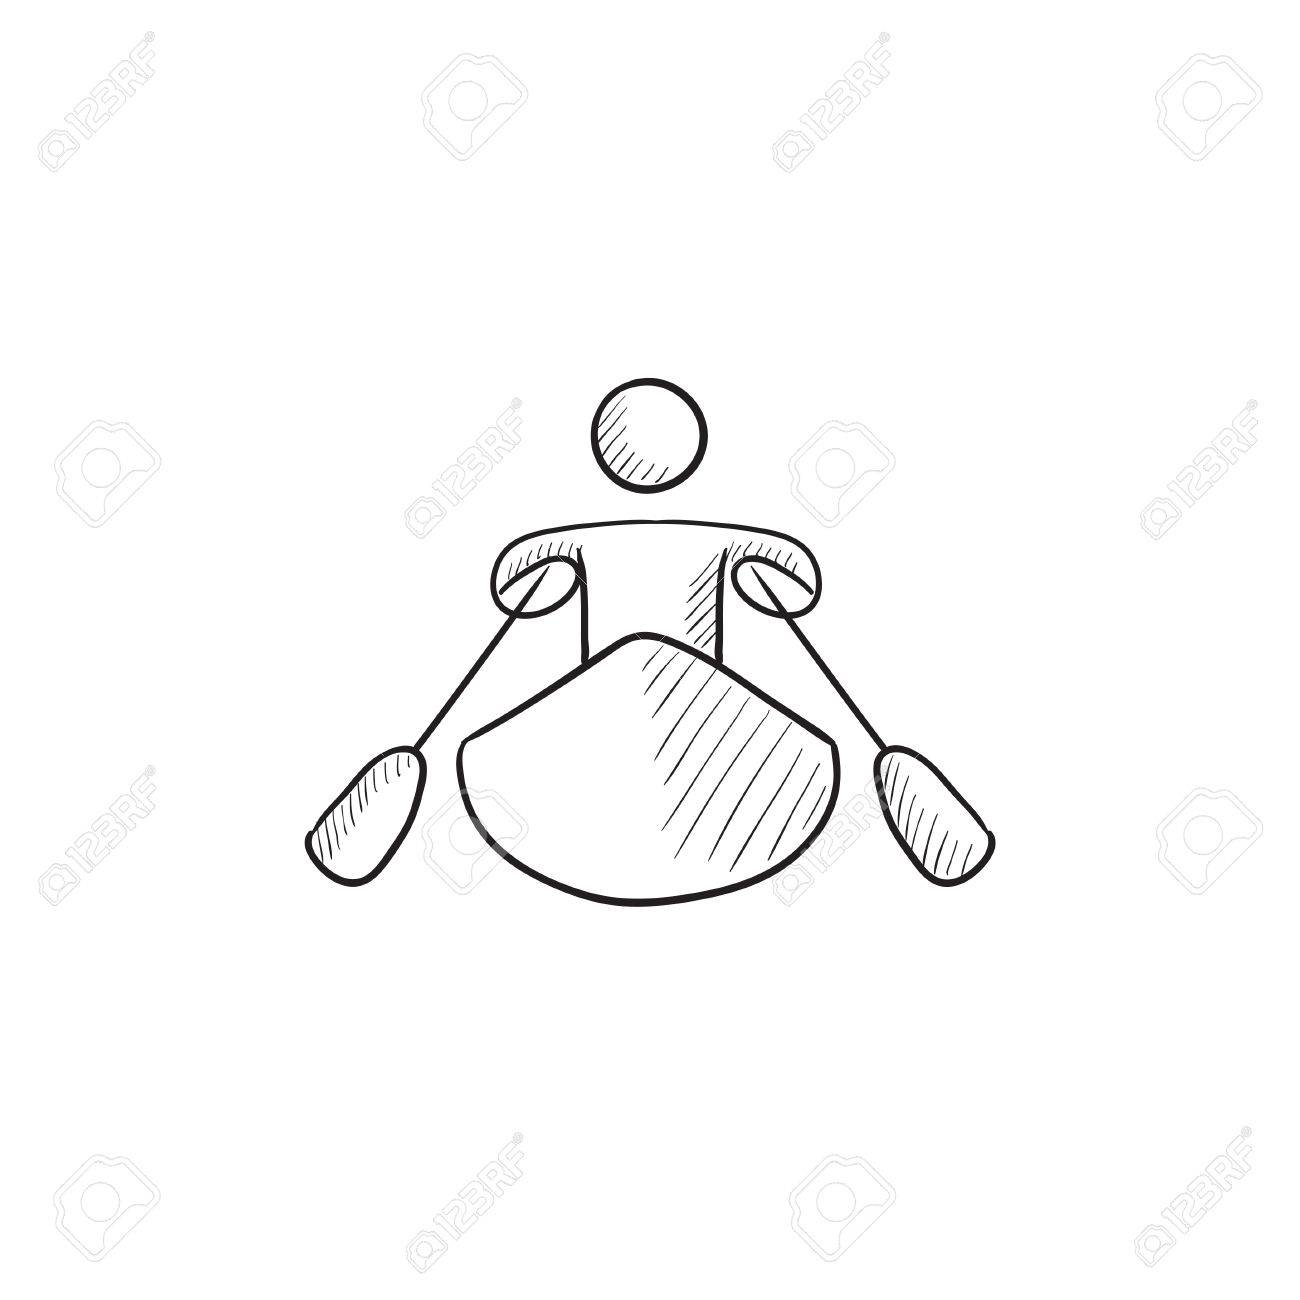 Man Kayaking Vector Sketch Icon Isolated On Background Hand Drawn